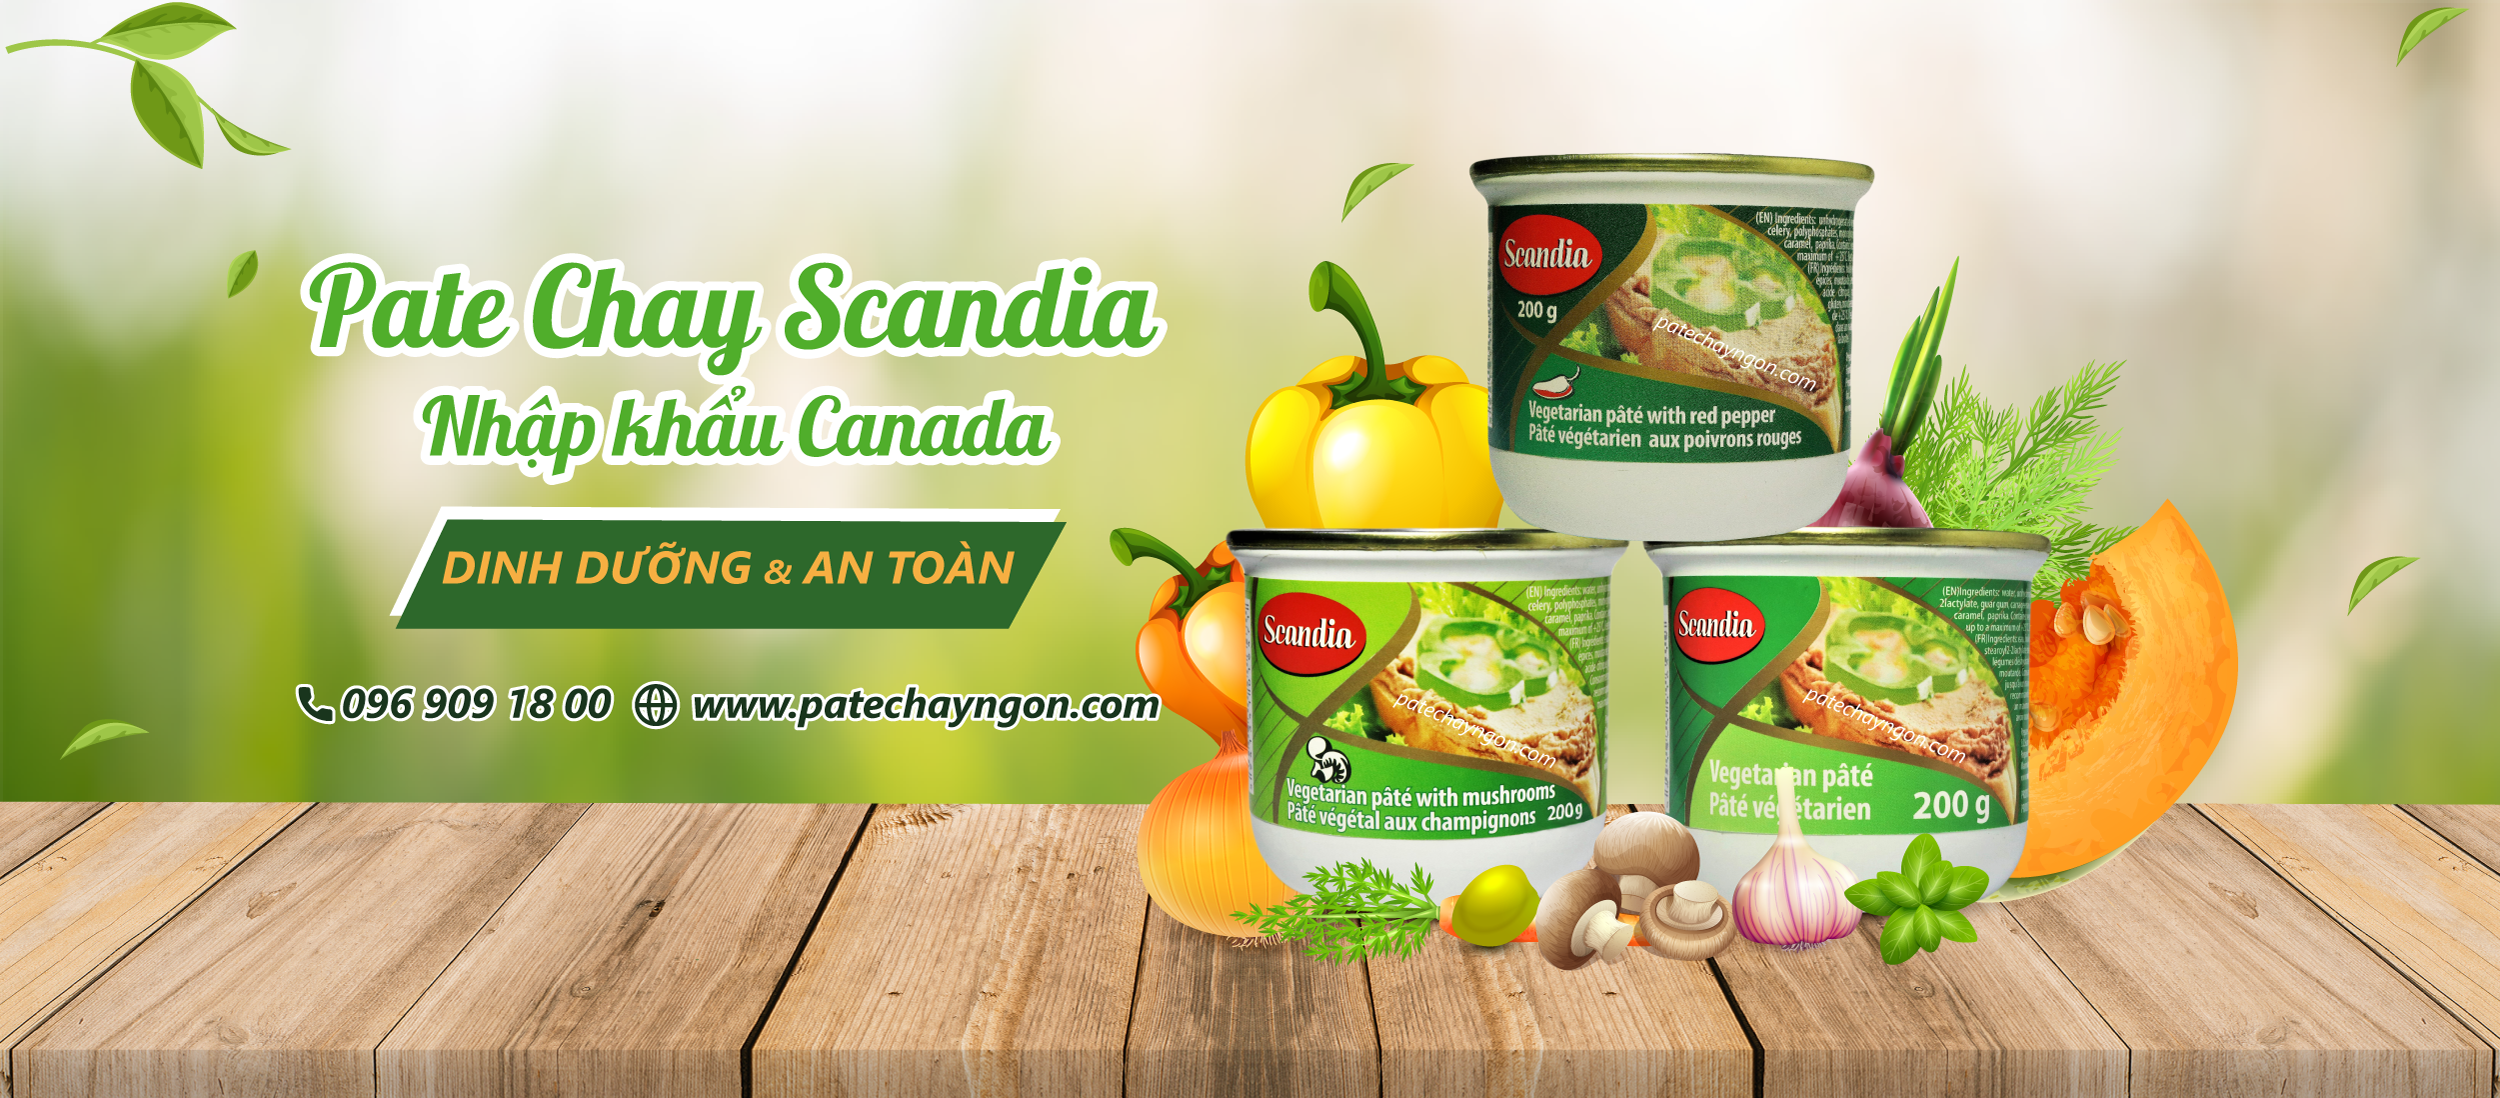 pate chay canada